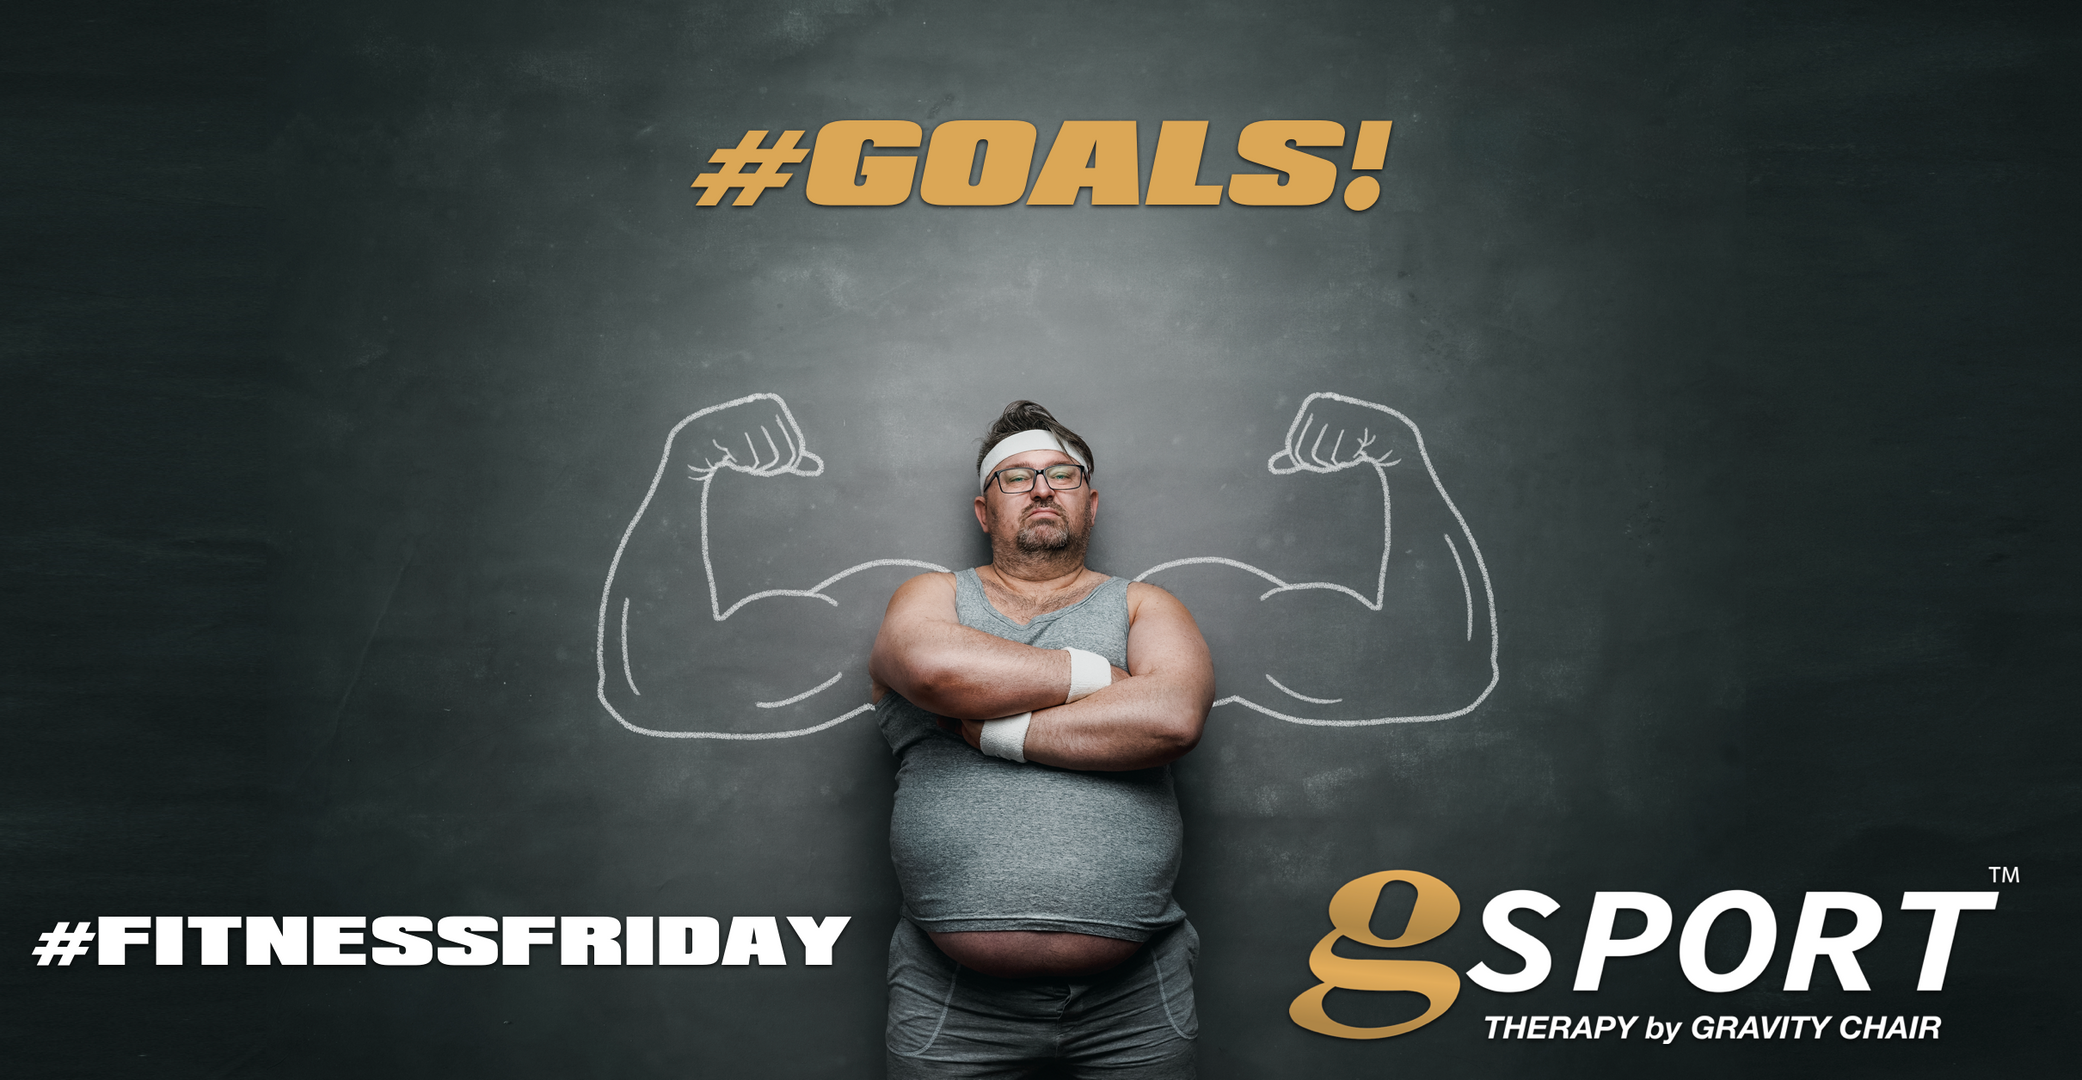 GSPORT_FITNESSFRIDAY02.png